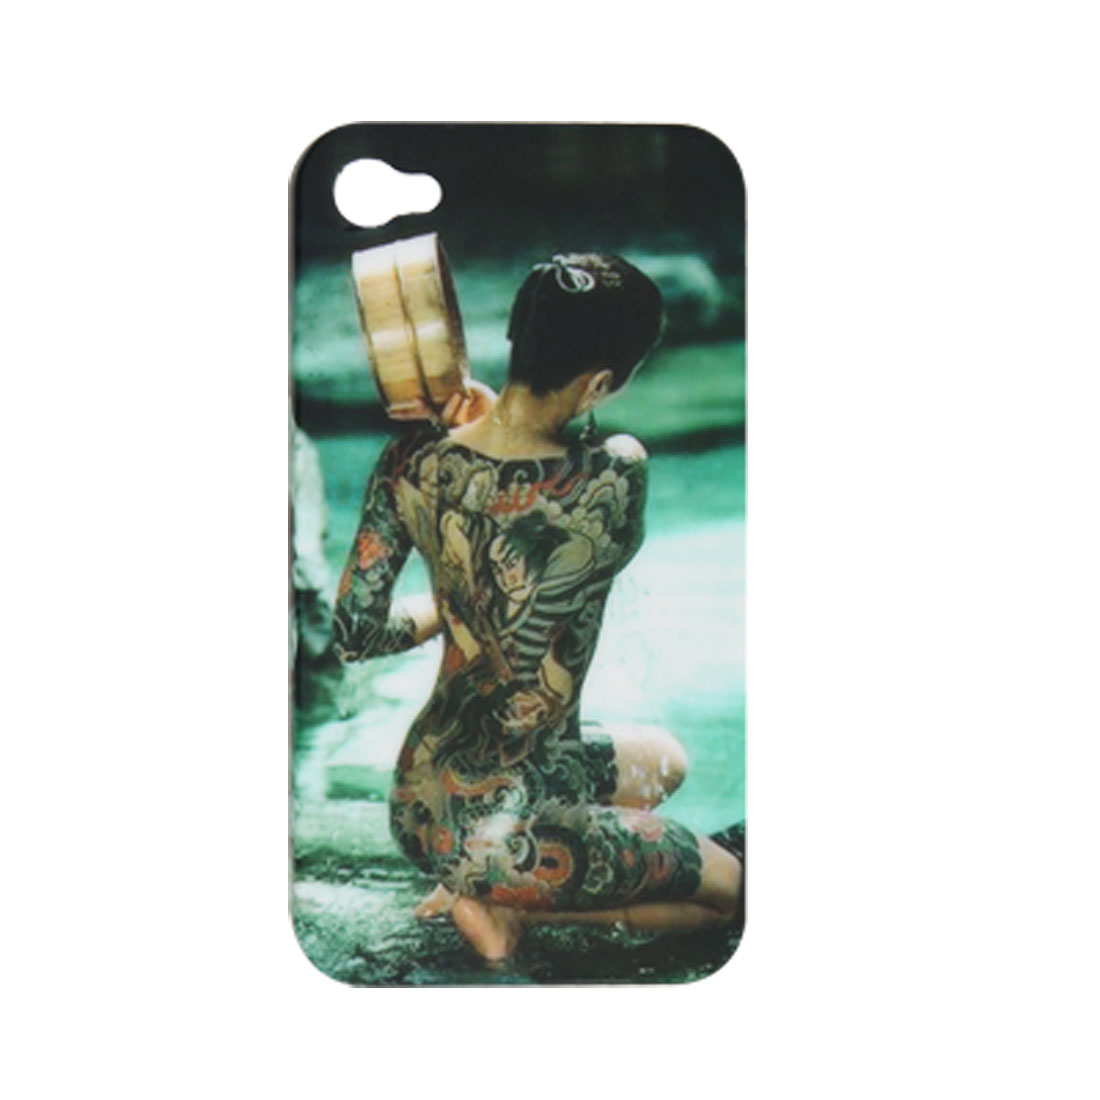 Tattoos Lady Rubberized Plastic Back Cover for iPhone 4 4G